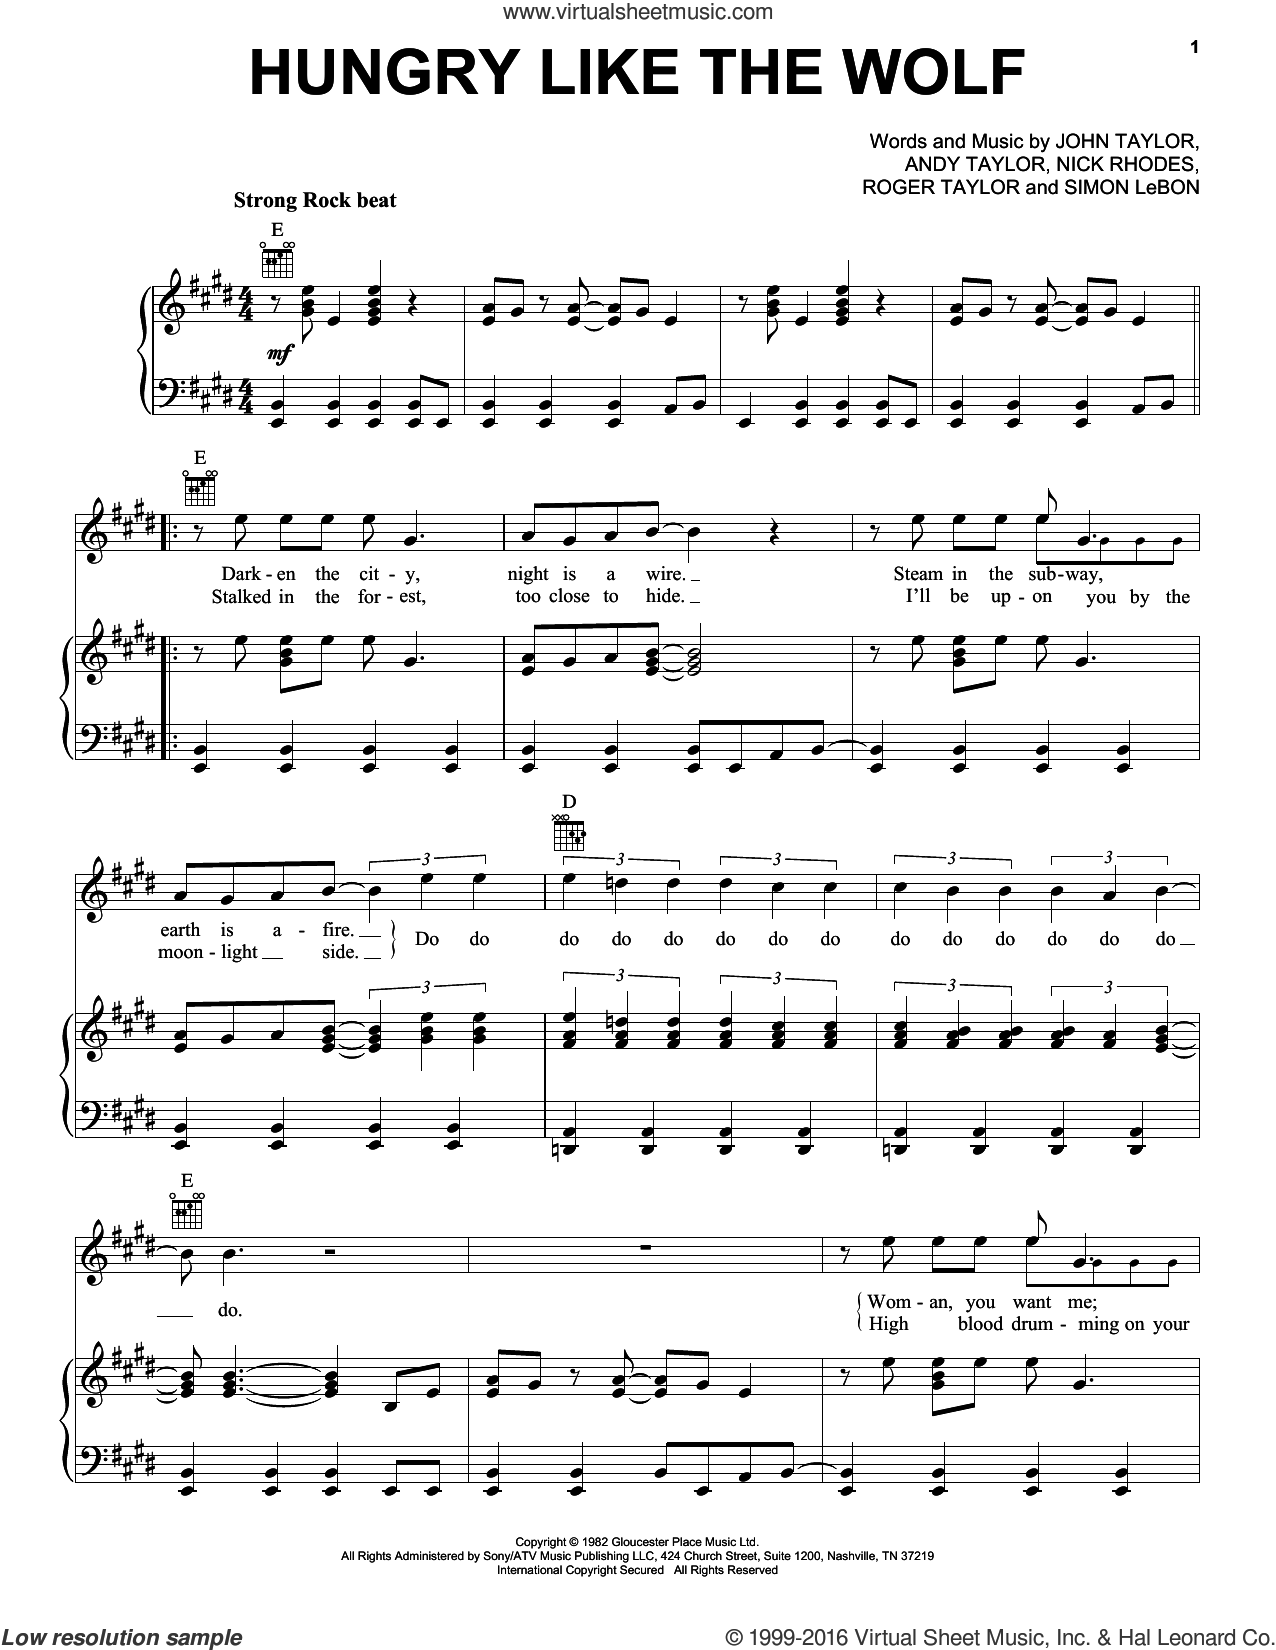 Hungry Like The Wolf sheet music for voice, piano or guitar by Duran Duran, Andrew Taylor, John Taylor, Nick Rhodes, Roger Taylor and Simon LeBon, intermediate skill level